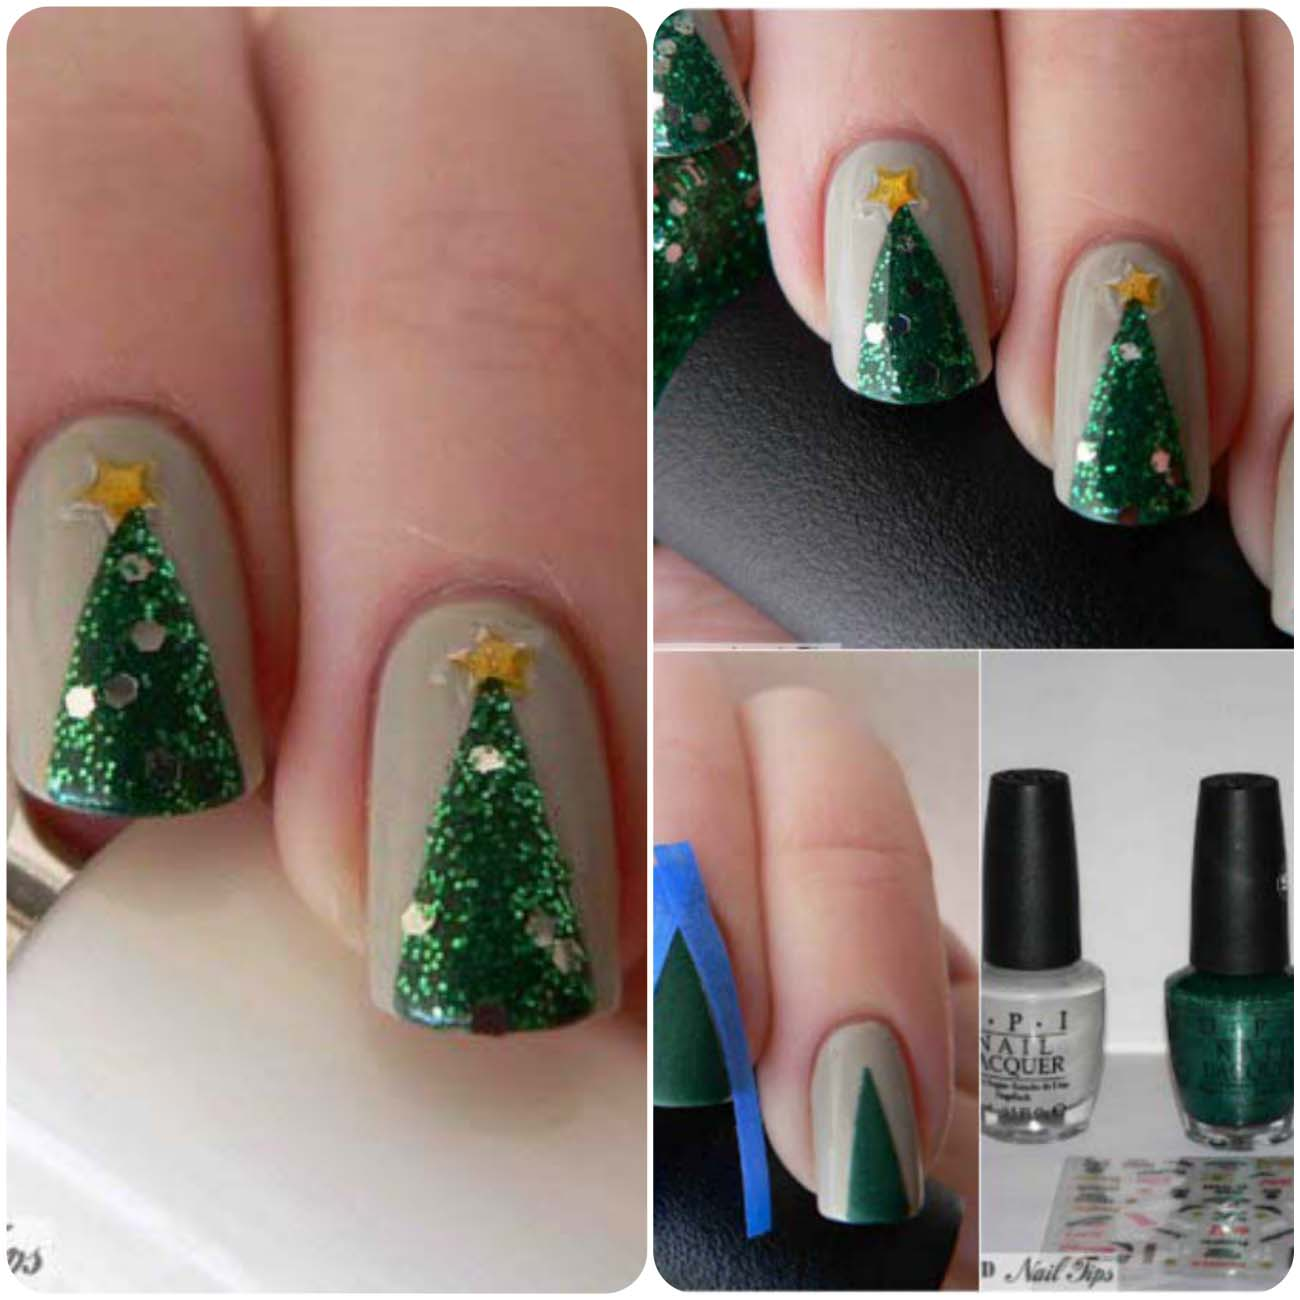 Charistmas Winter Nail art designs (17)_Fotor_Collage